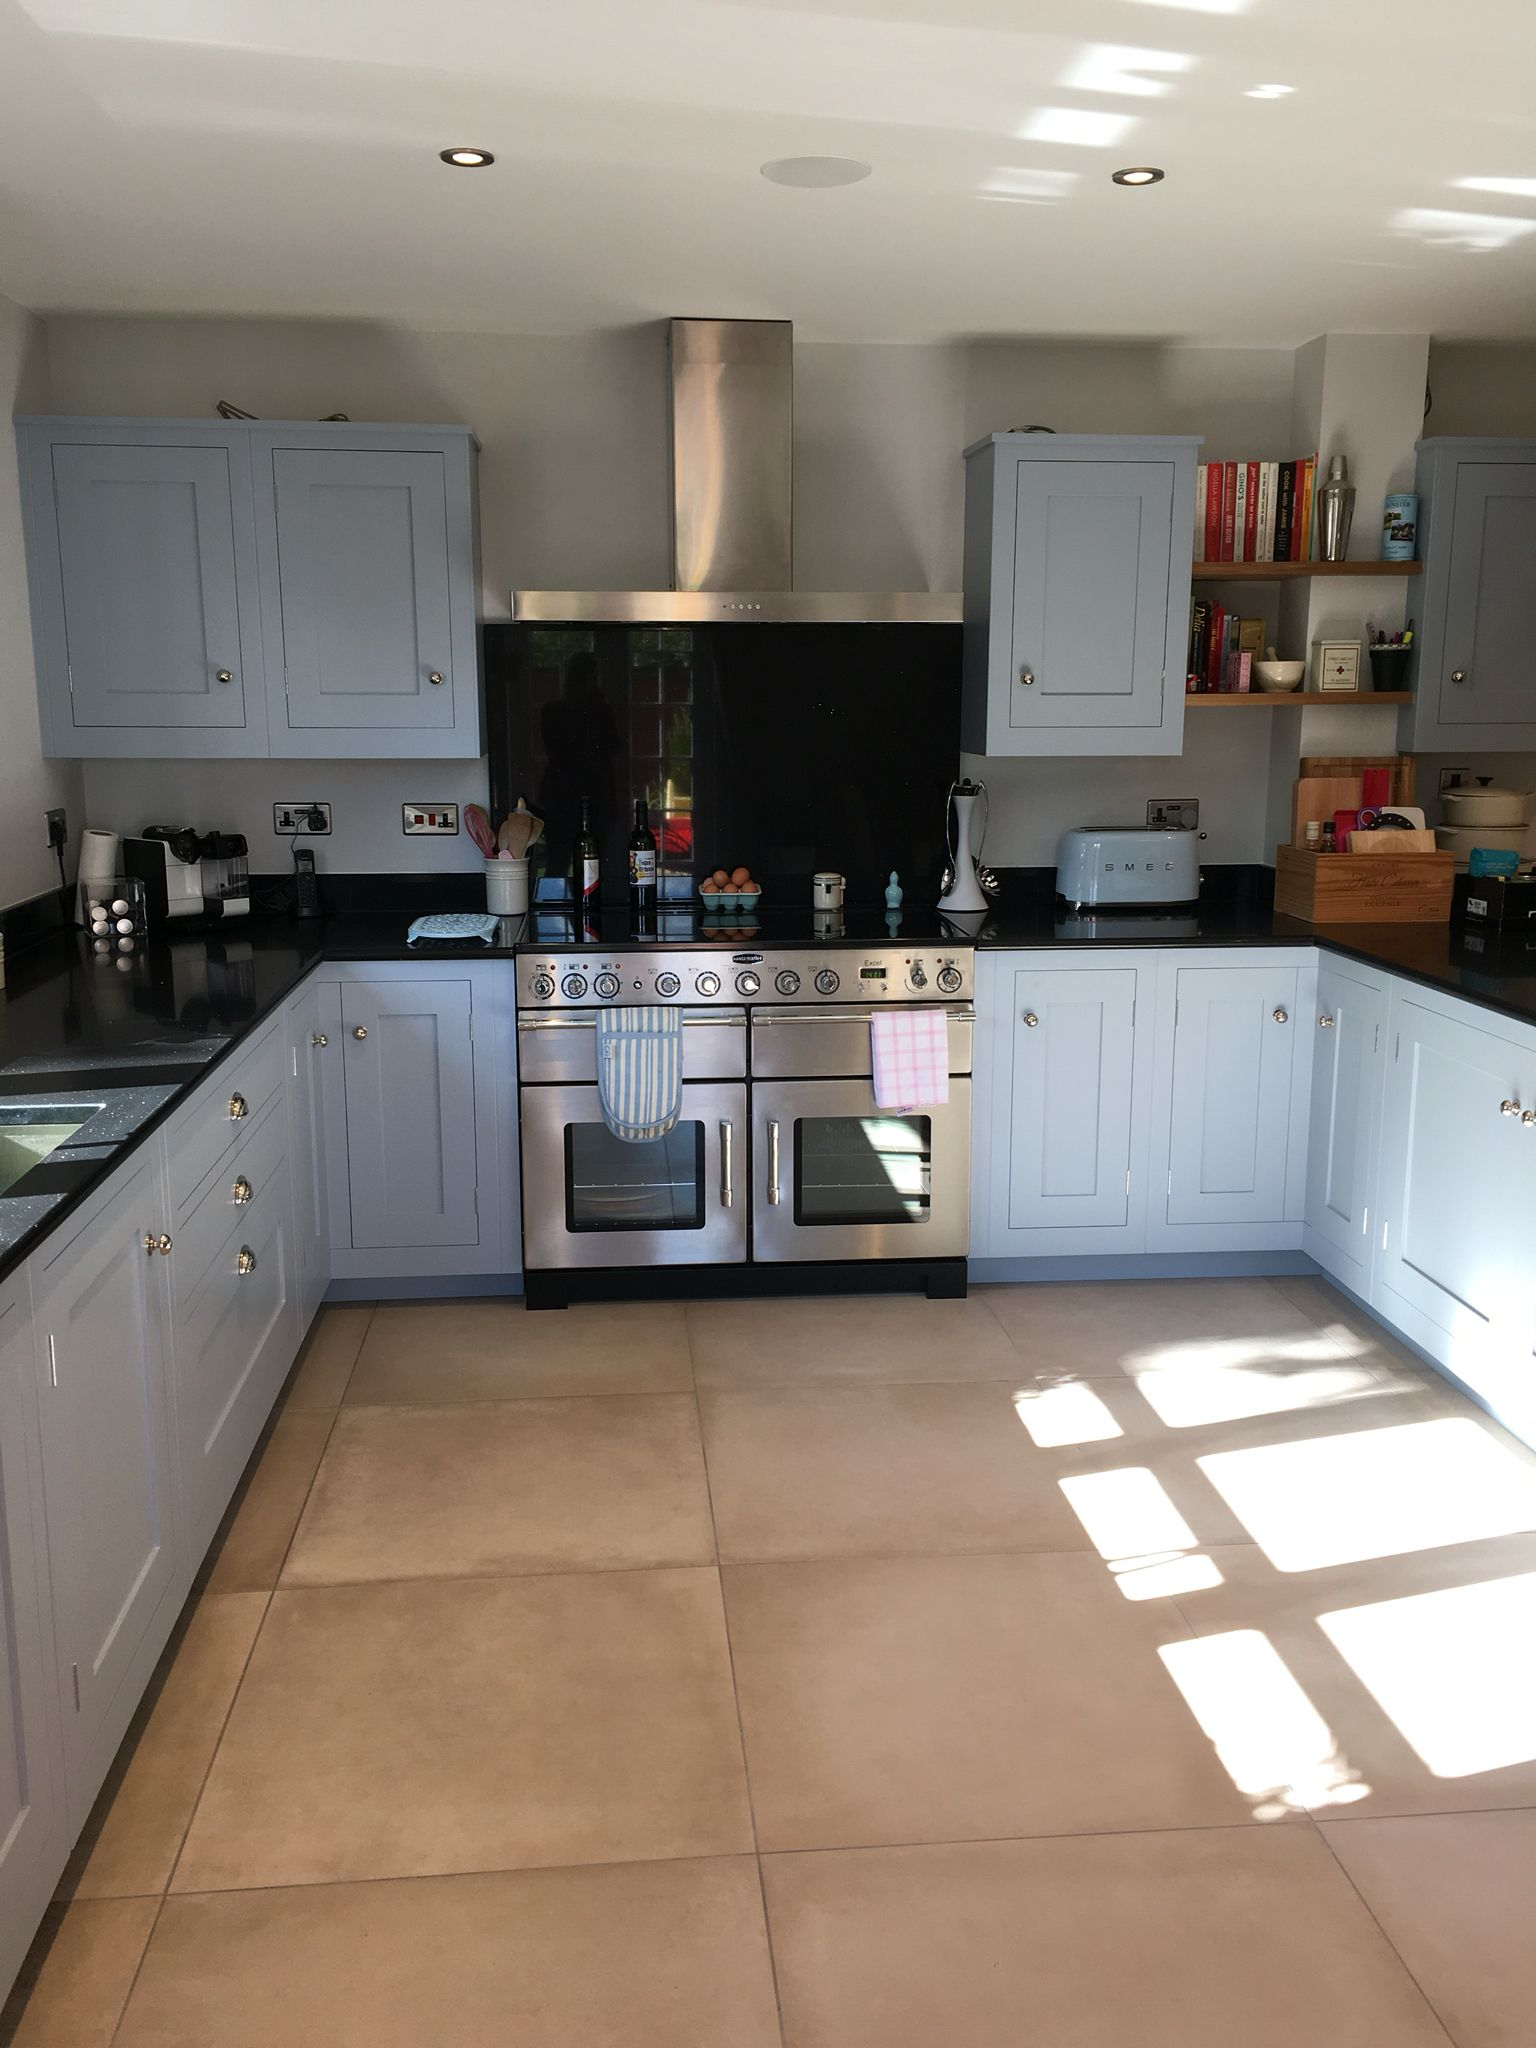 Harvey Jones Shaker Kitchen Painted In Farrow And Ball Parma Grey Range Master Excel Induction